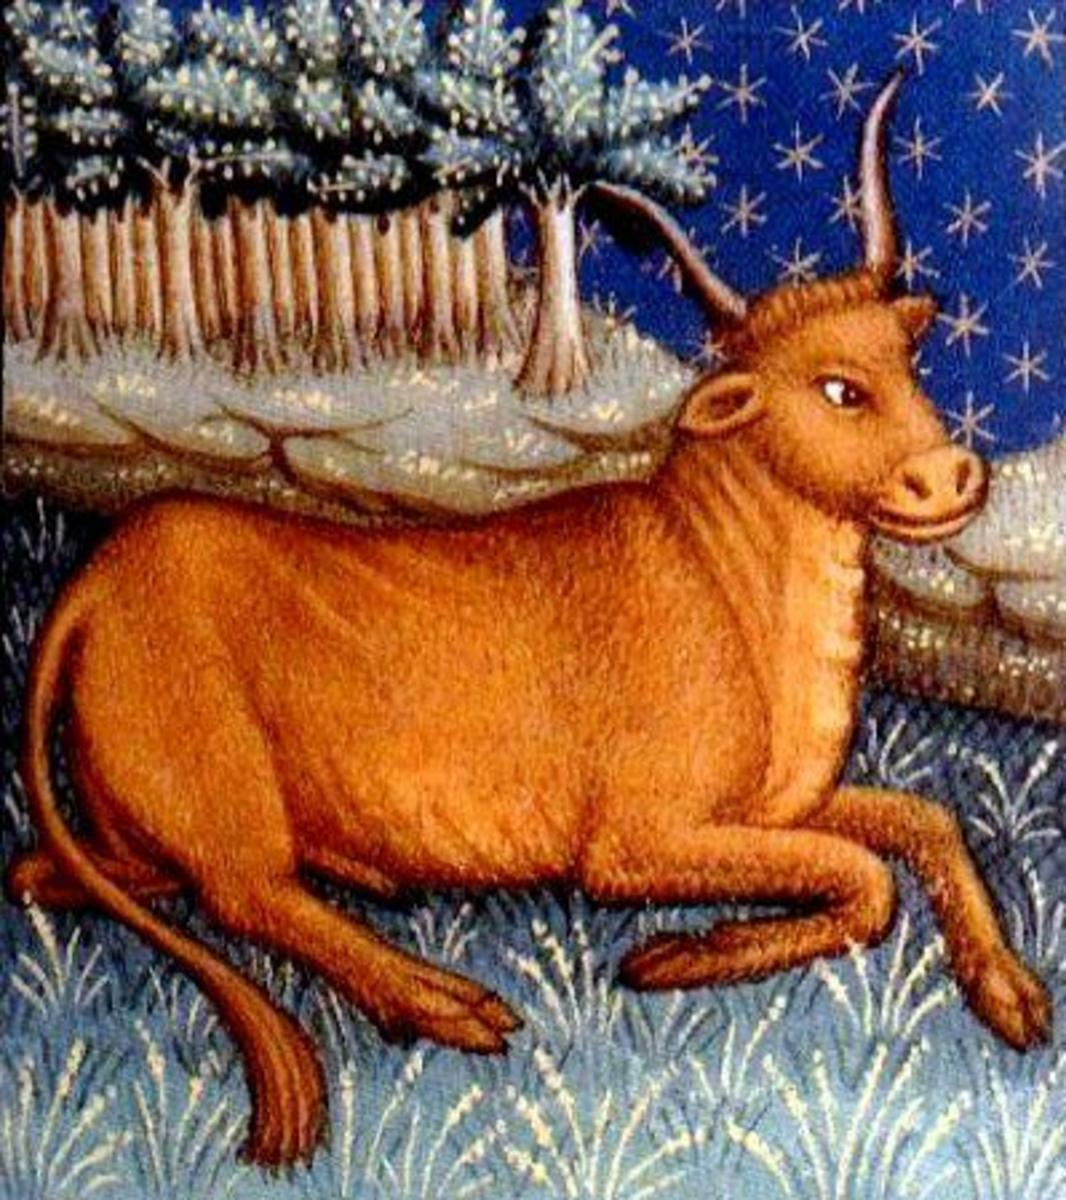 The Astrological symbol for those born with the Sun in the Taurus constellation is the Bull.  This could help us to understand a Taurean's stubborn streak, digging their hooves in and not budging in an area where they have made a firm decision.